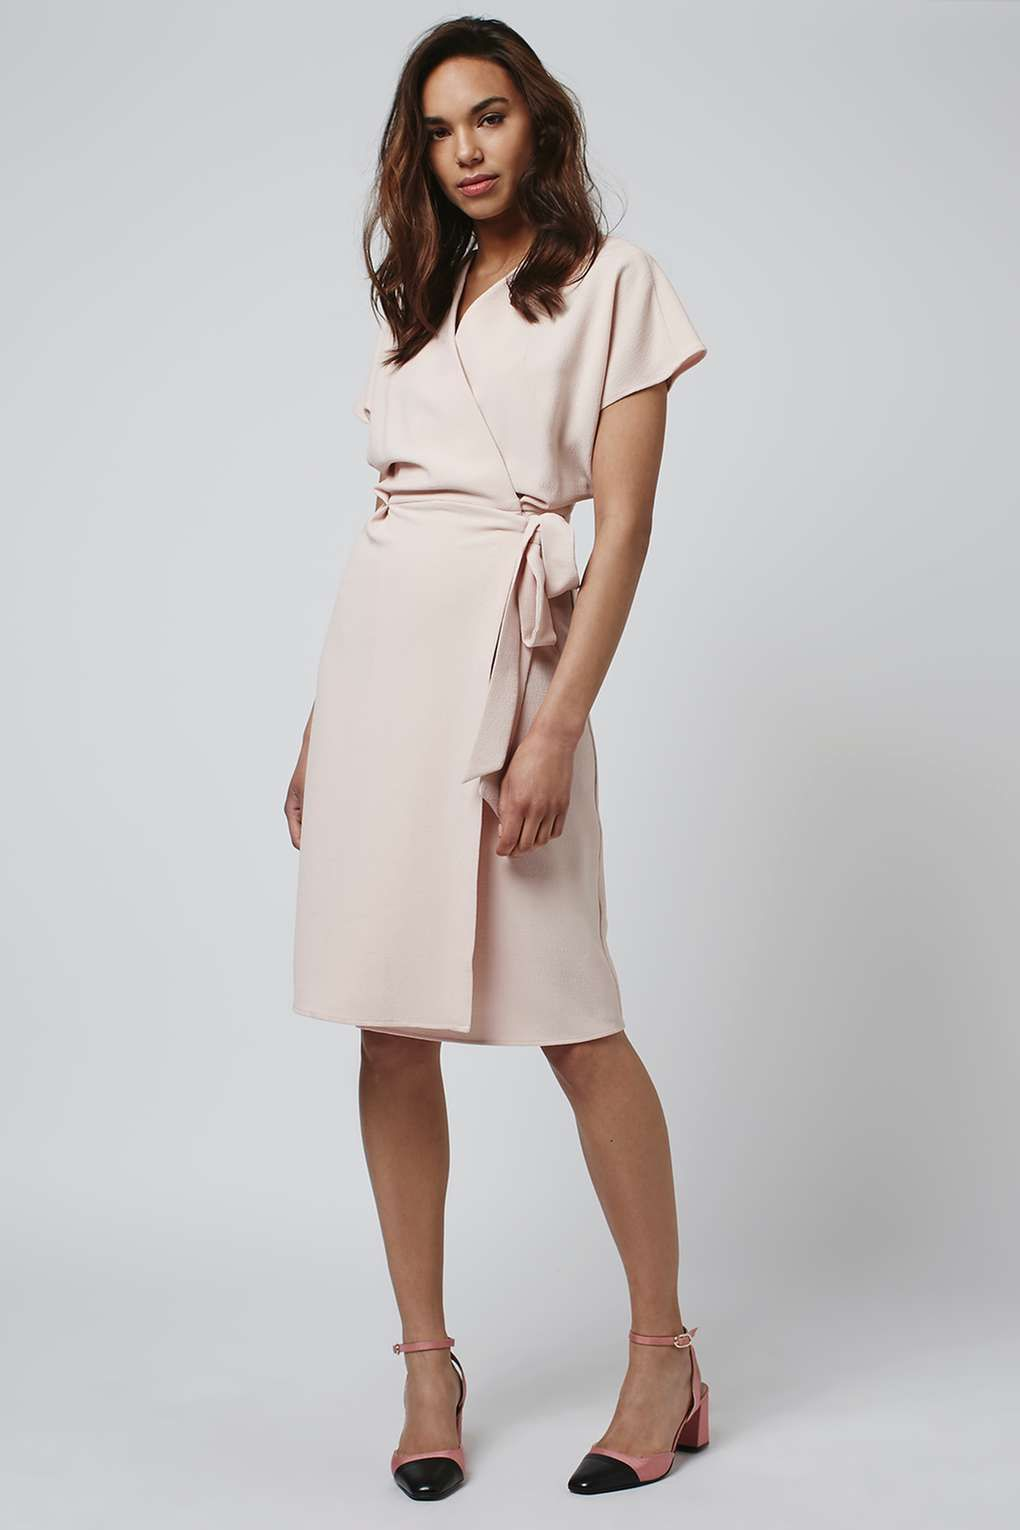 0636488f6cf Wrap Dress - Topshop Perfect for the office